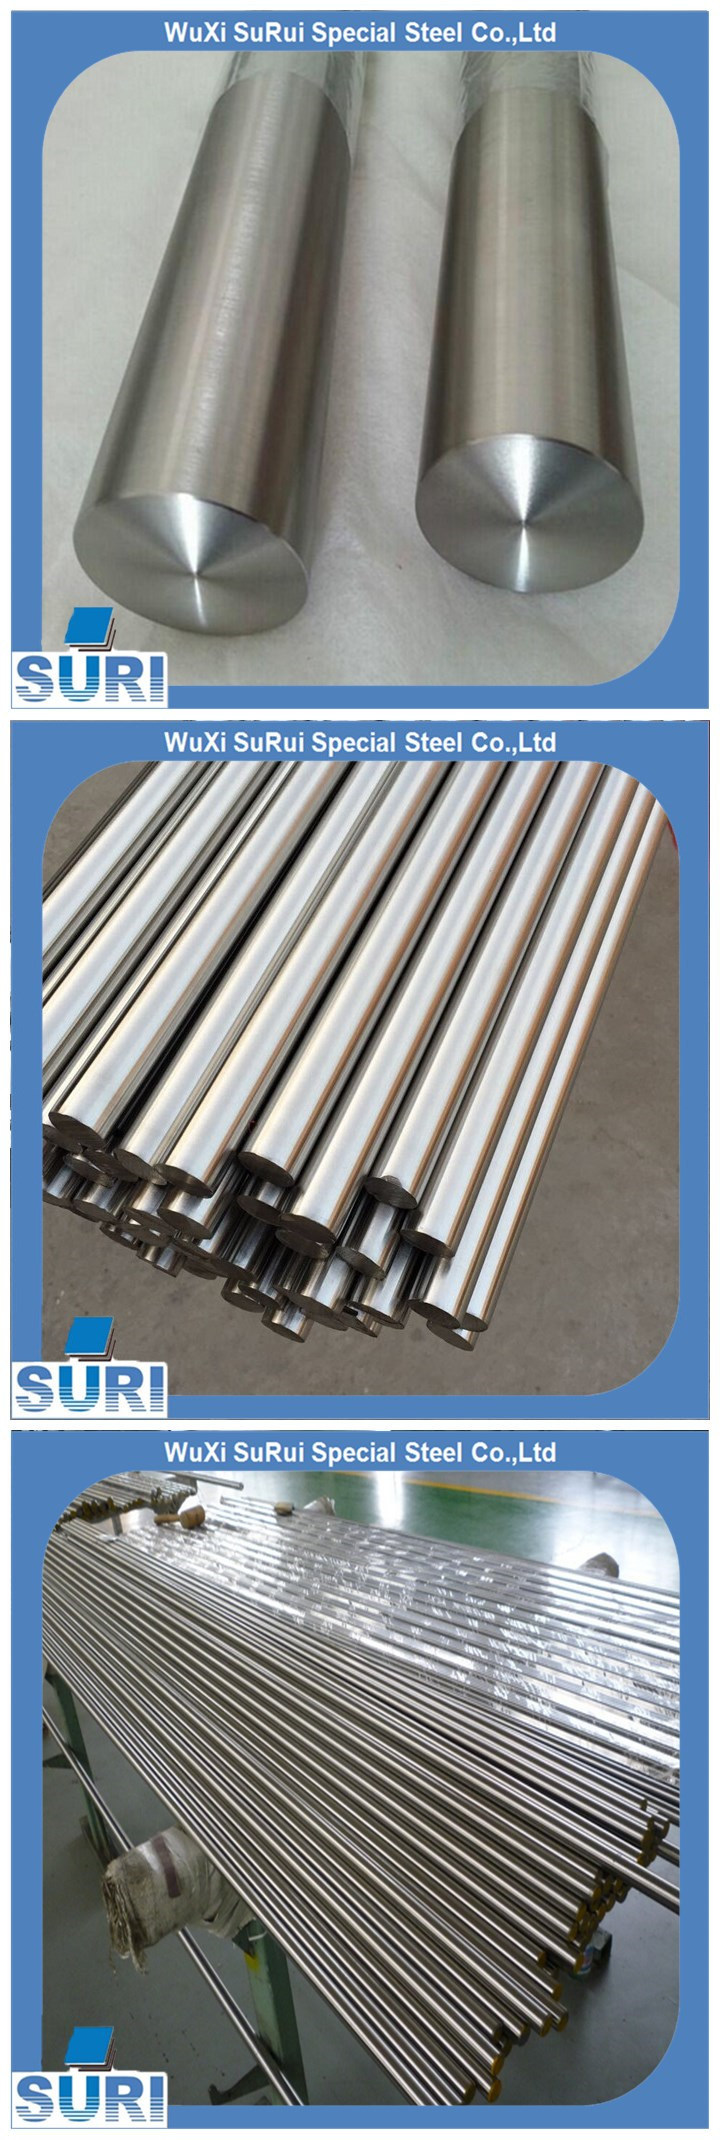 AISI630 17-4pH Stainless Steel Round Bar/Rods